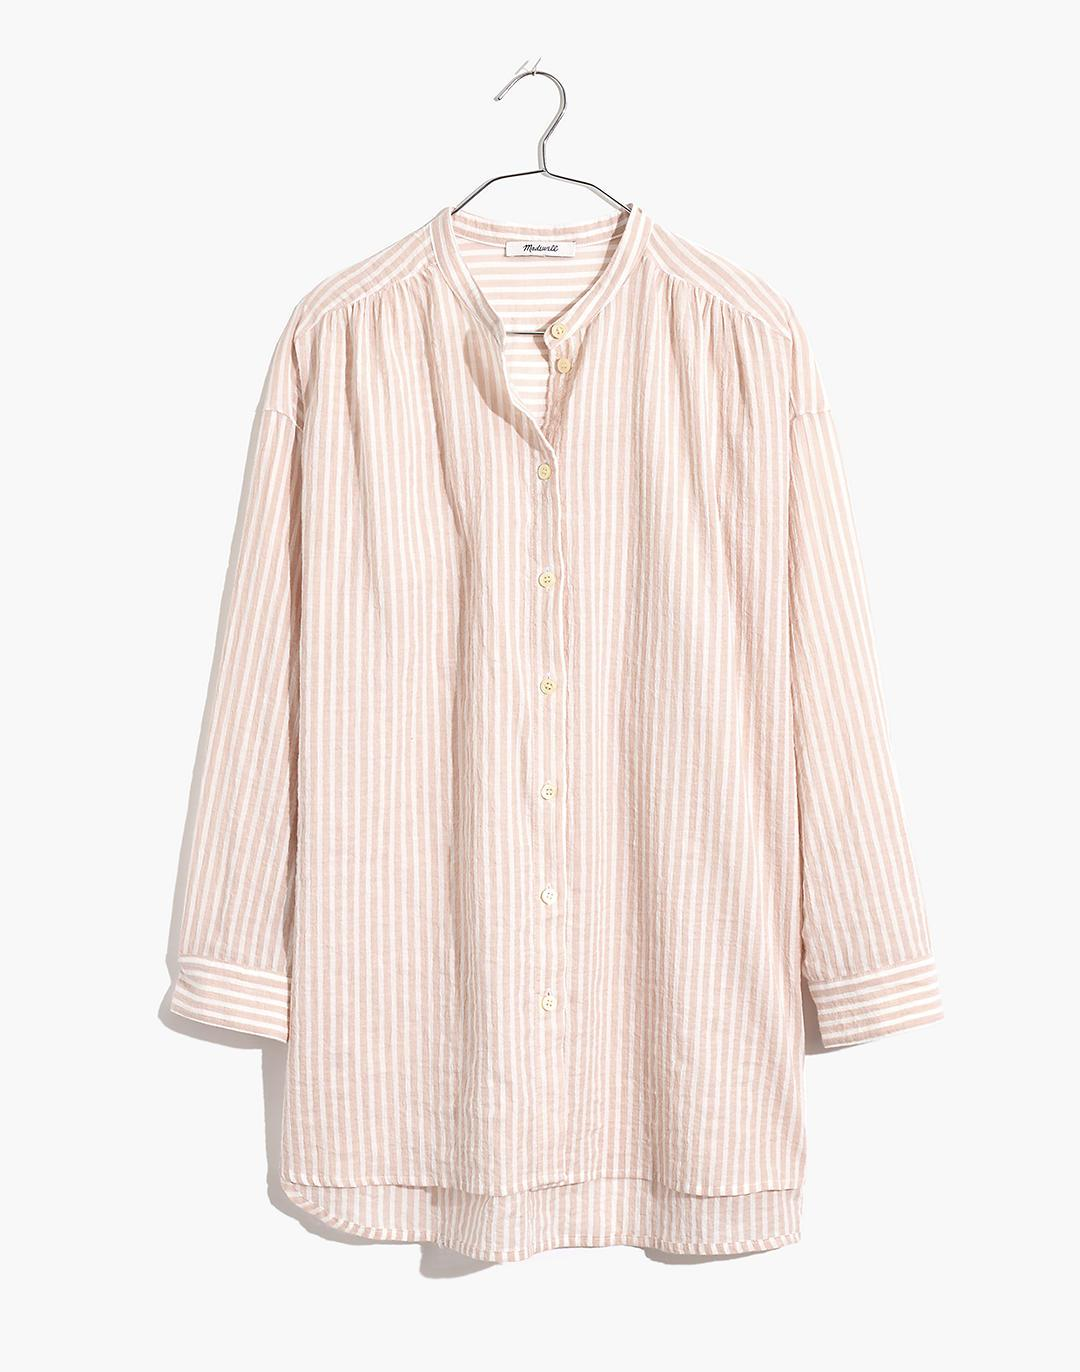 Banded Collar Tunic Top in Stripe 4